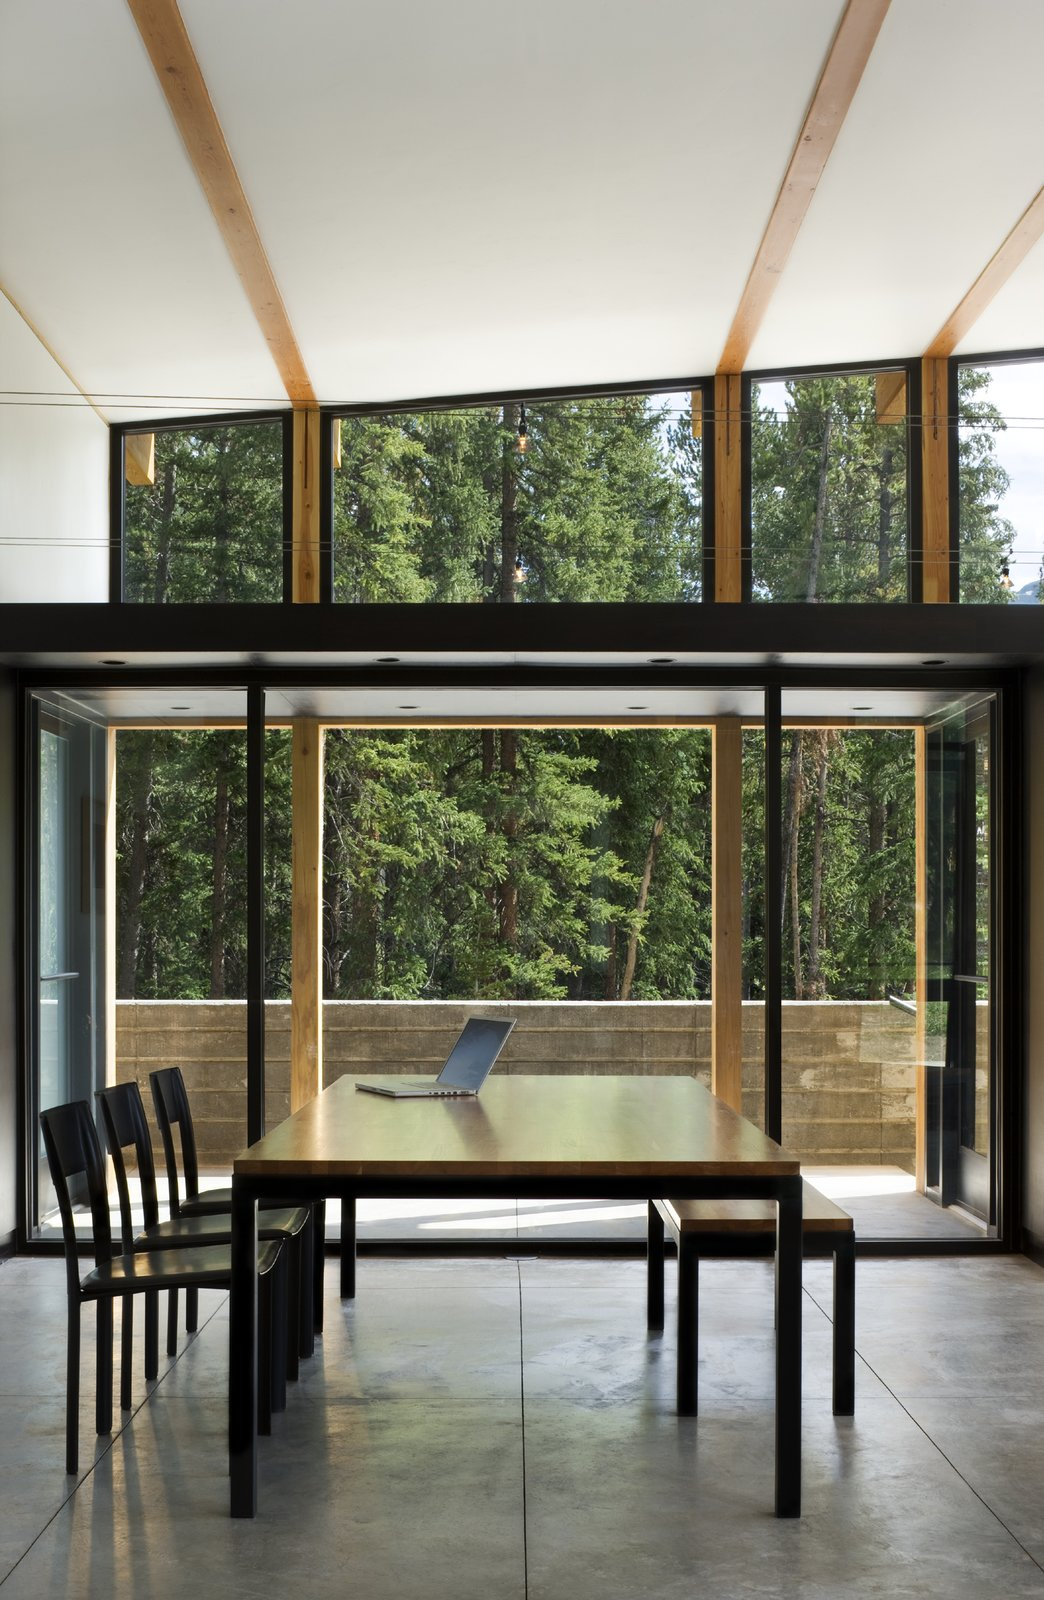 Dining Room, Table, Chair, and Concrete Floor  Weigel Residence by Substance Architecture